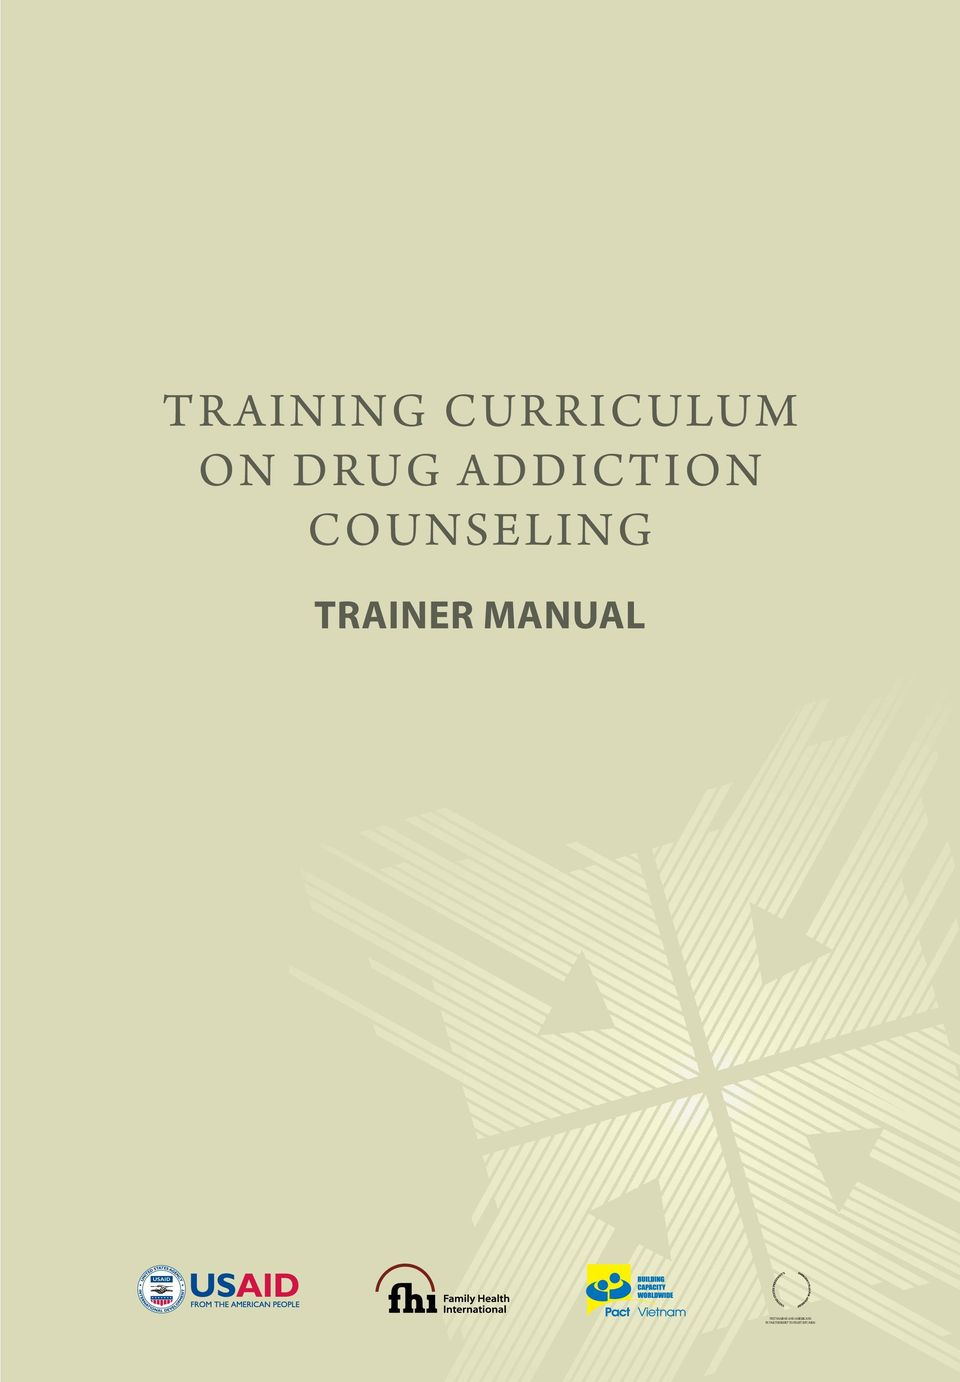 ADDICTION Counseling Trainer